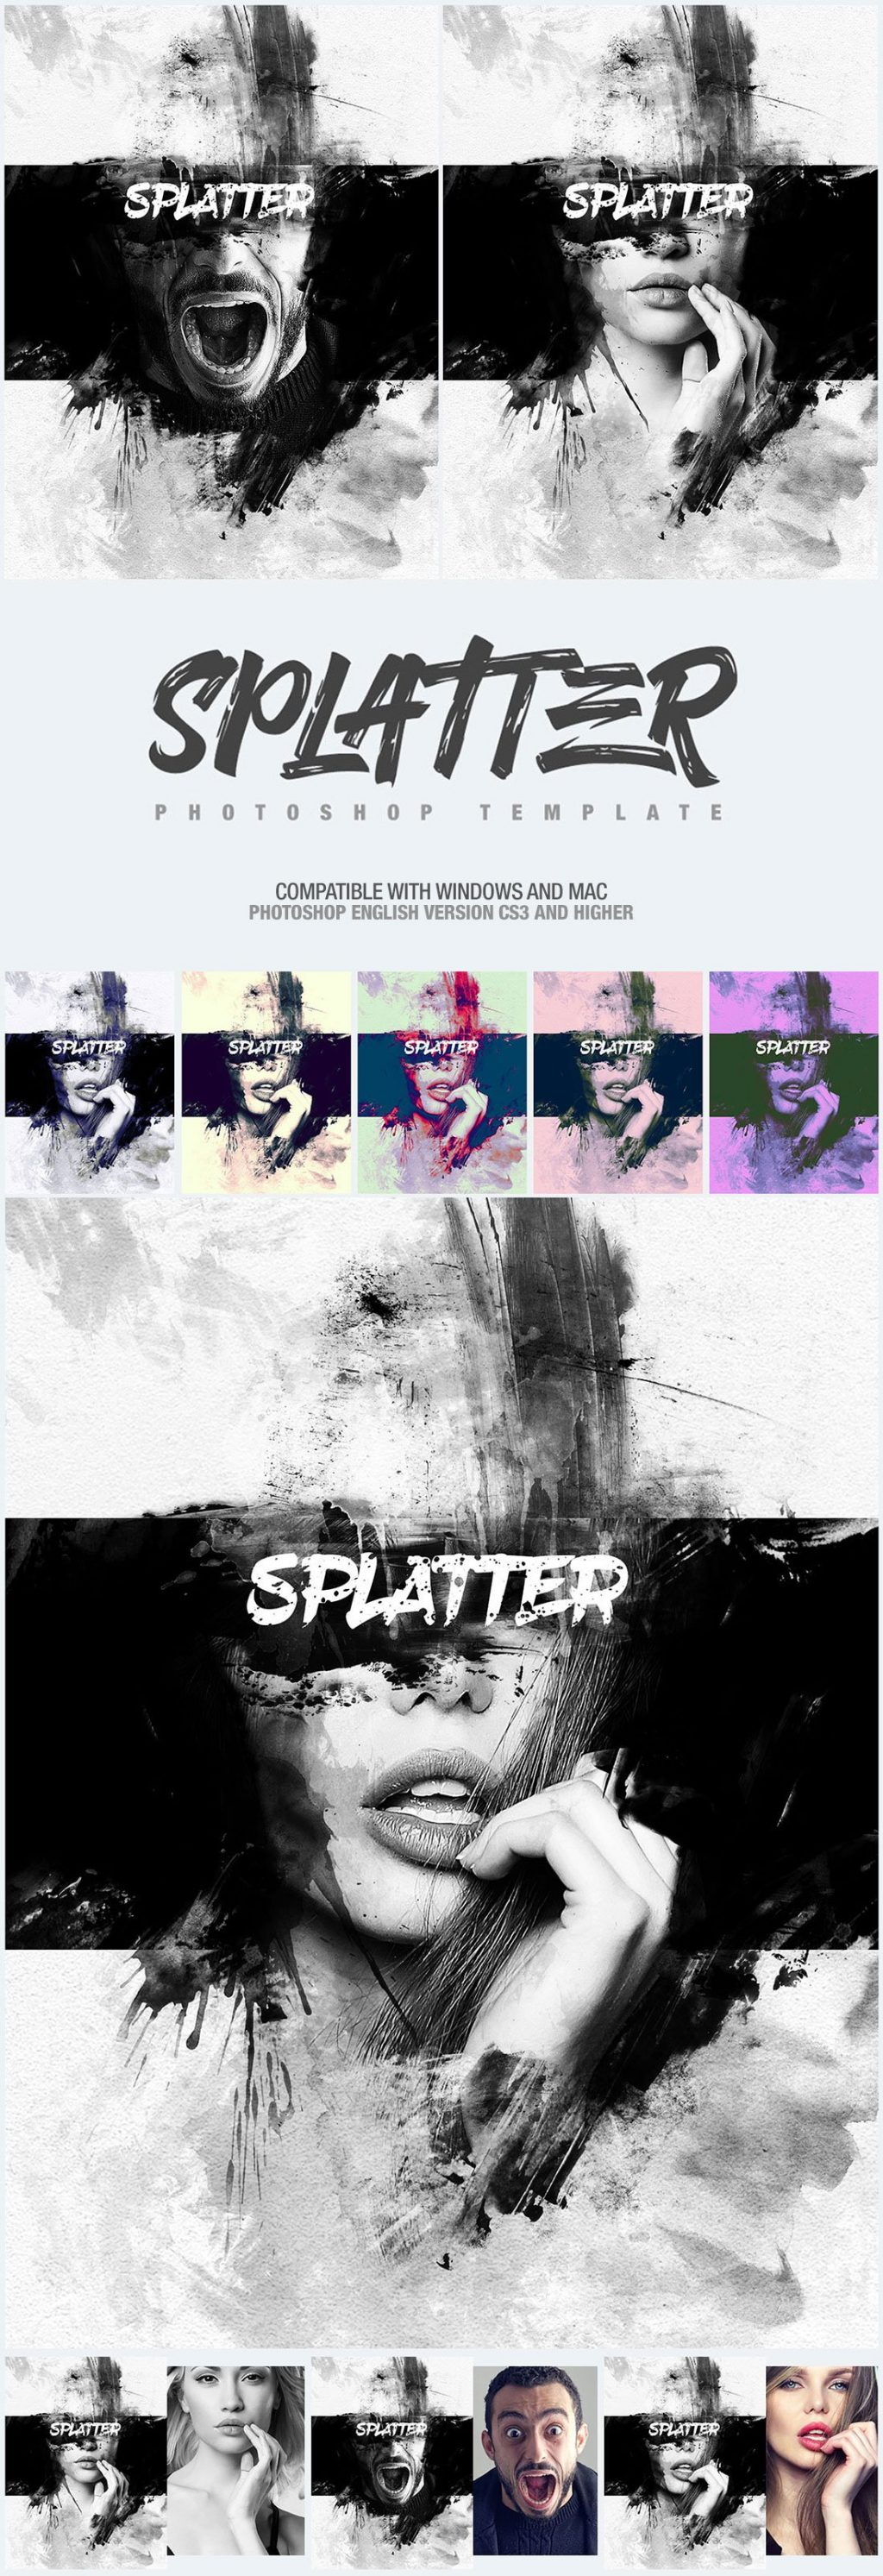 Photoshop Actions & Templates: Artistic Photo FX Bundle - splatter photo template design by amorjesu